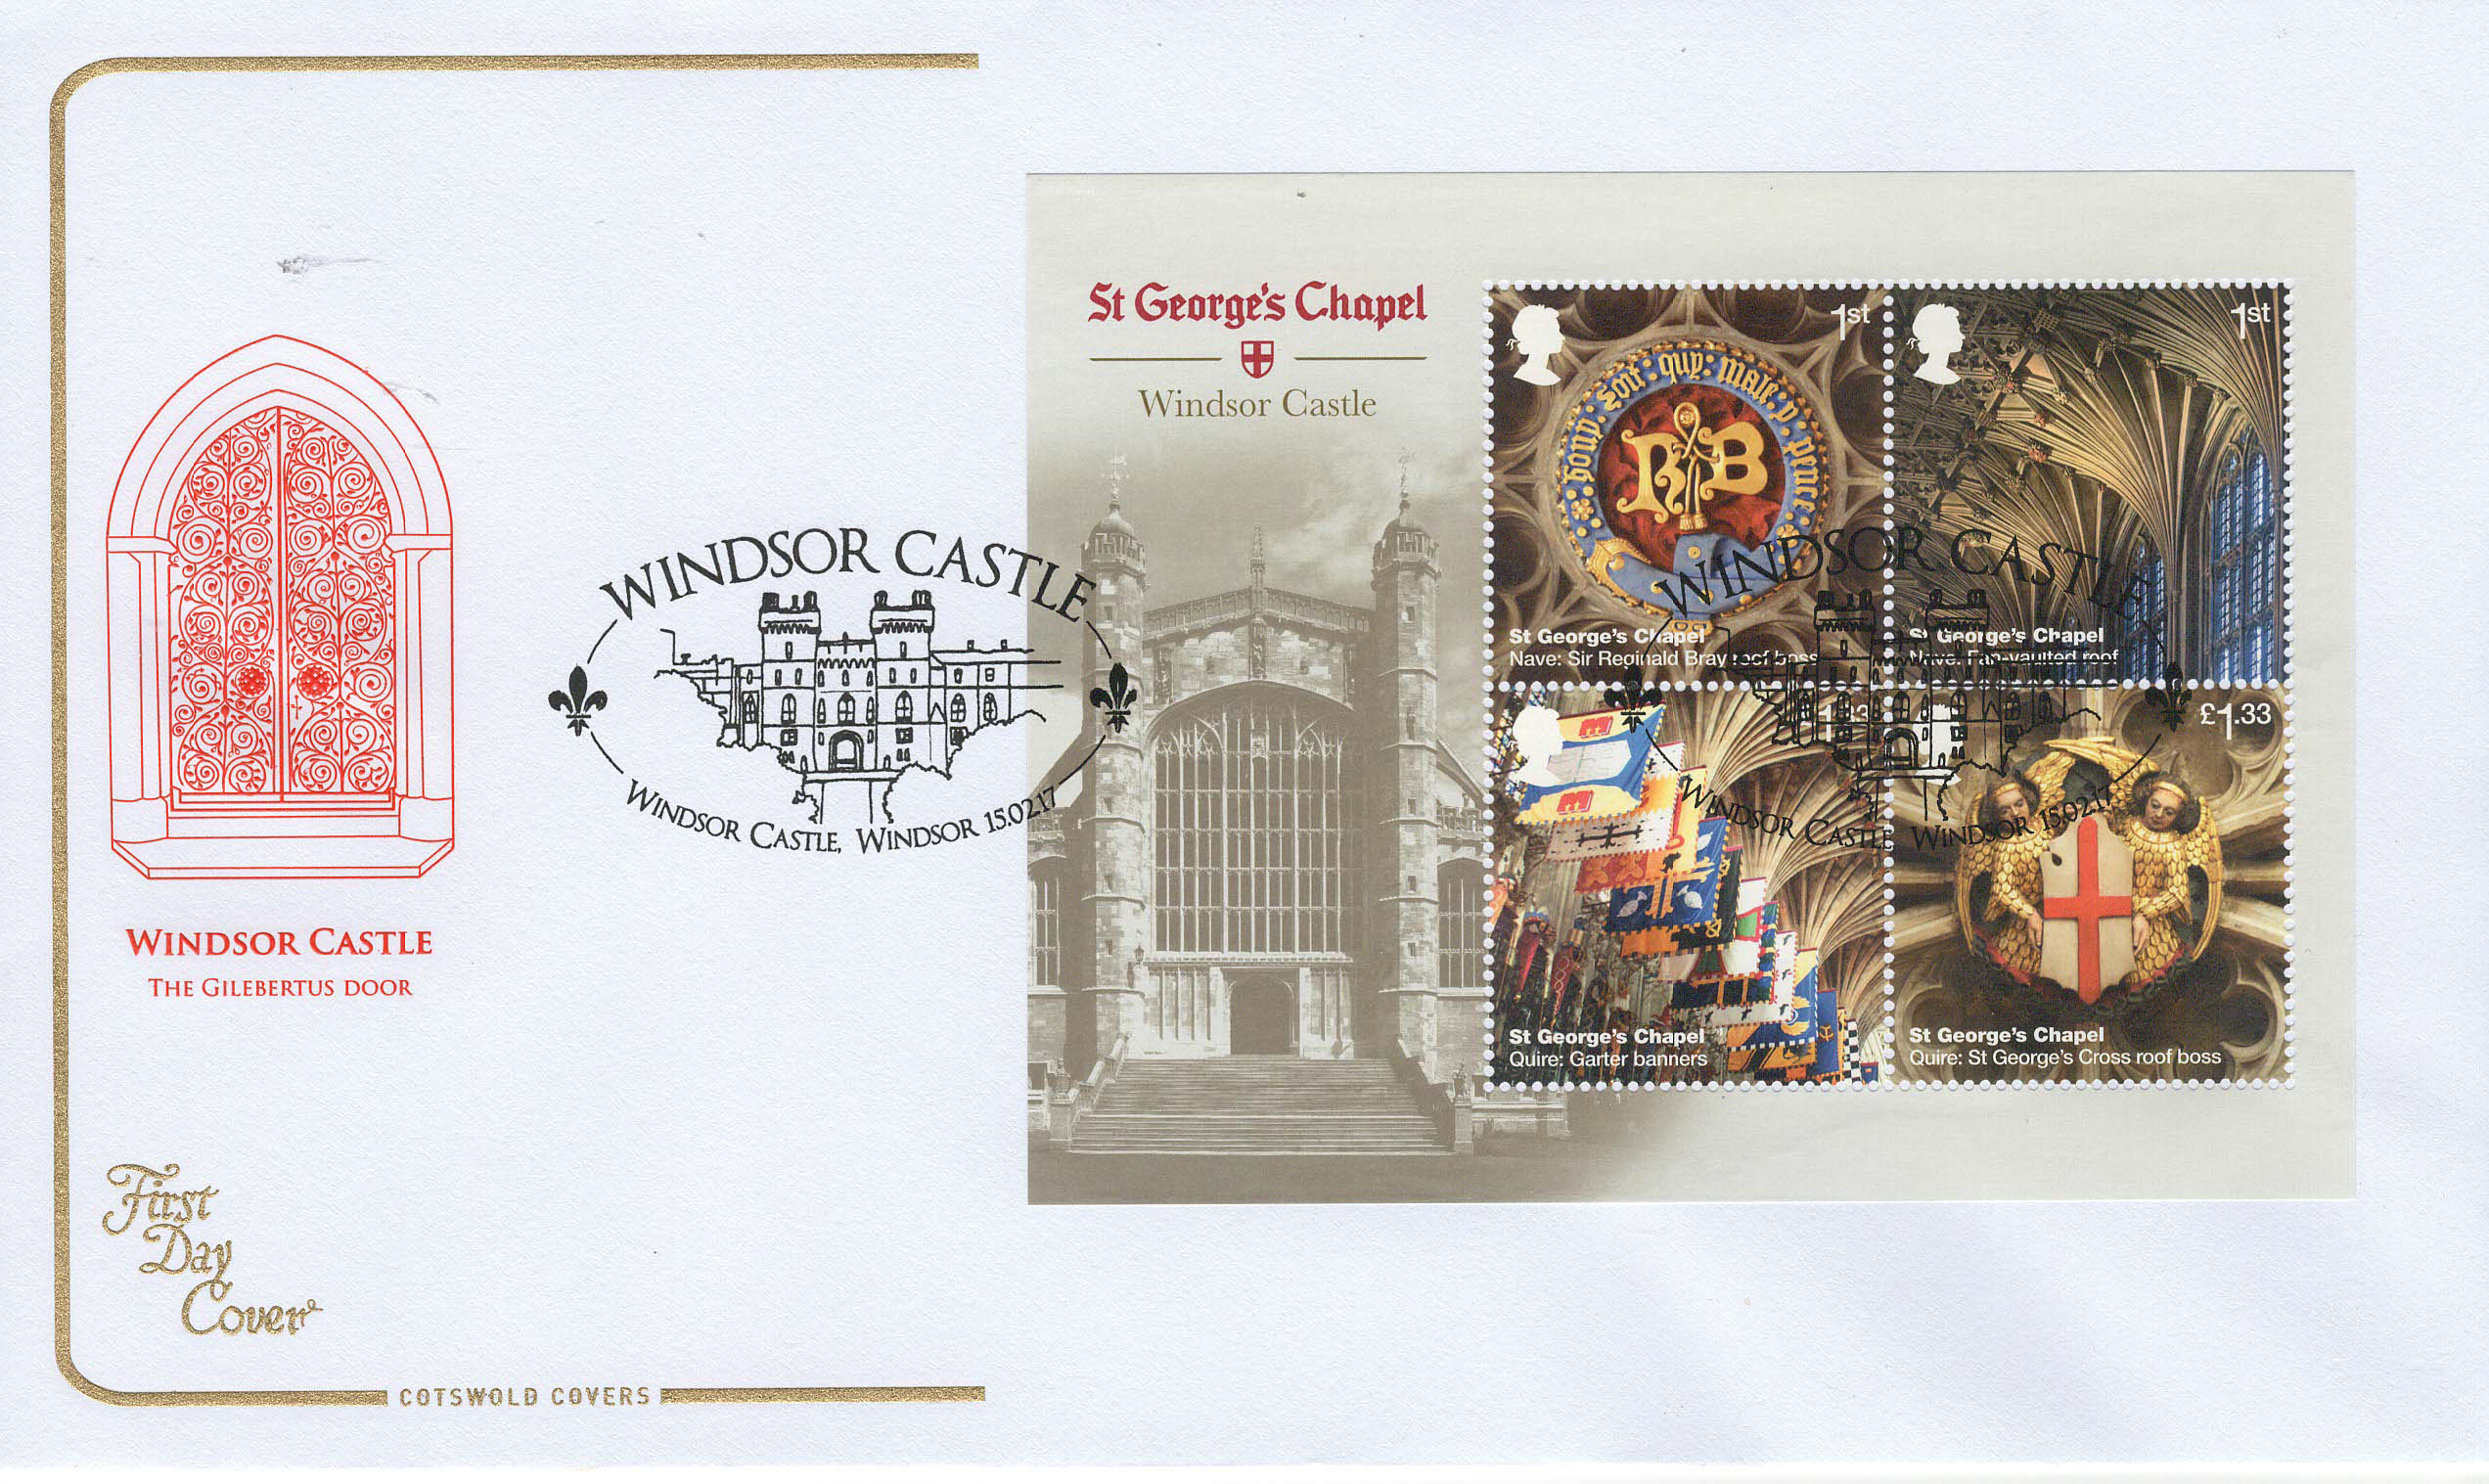 Cots-Windsor-Castle-Minisheet-FDC-Feb-2017